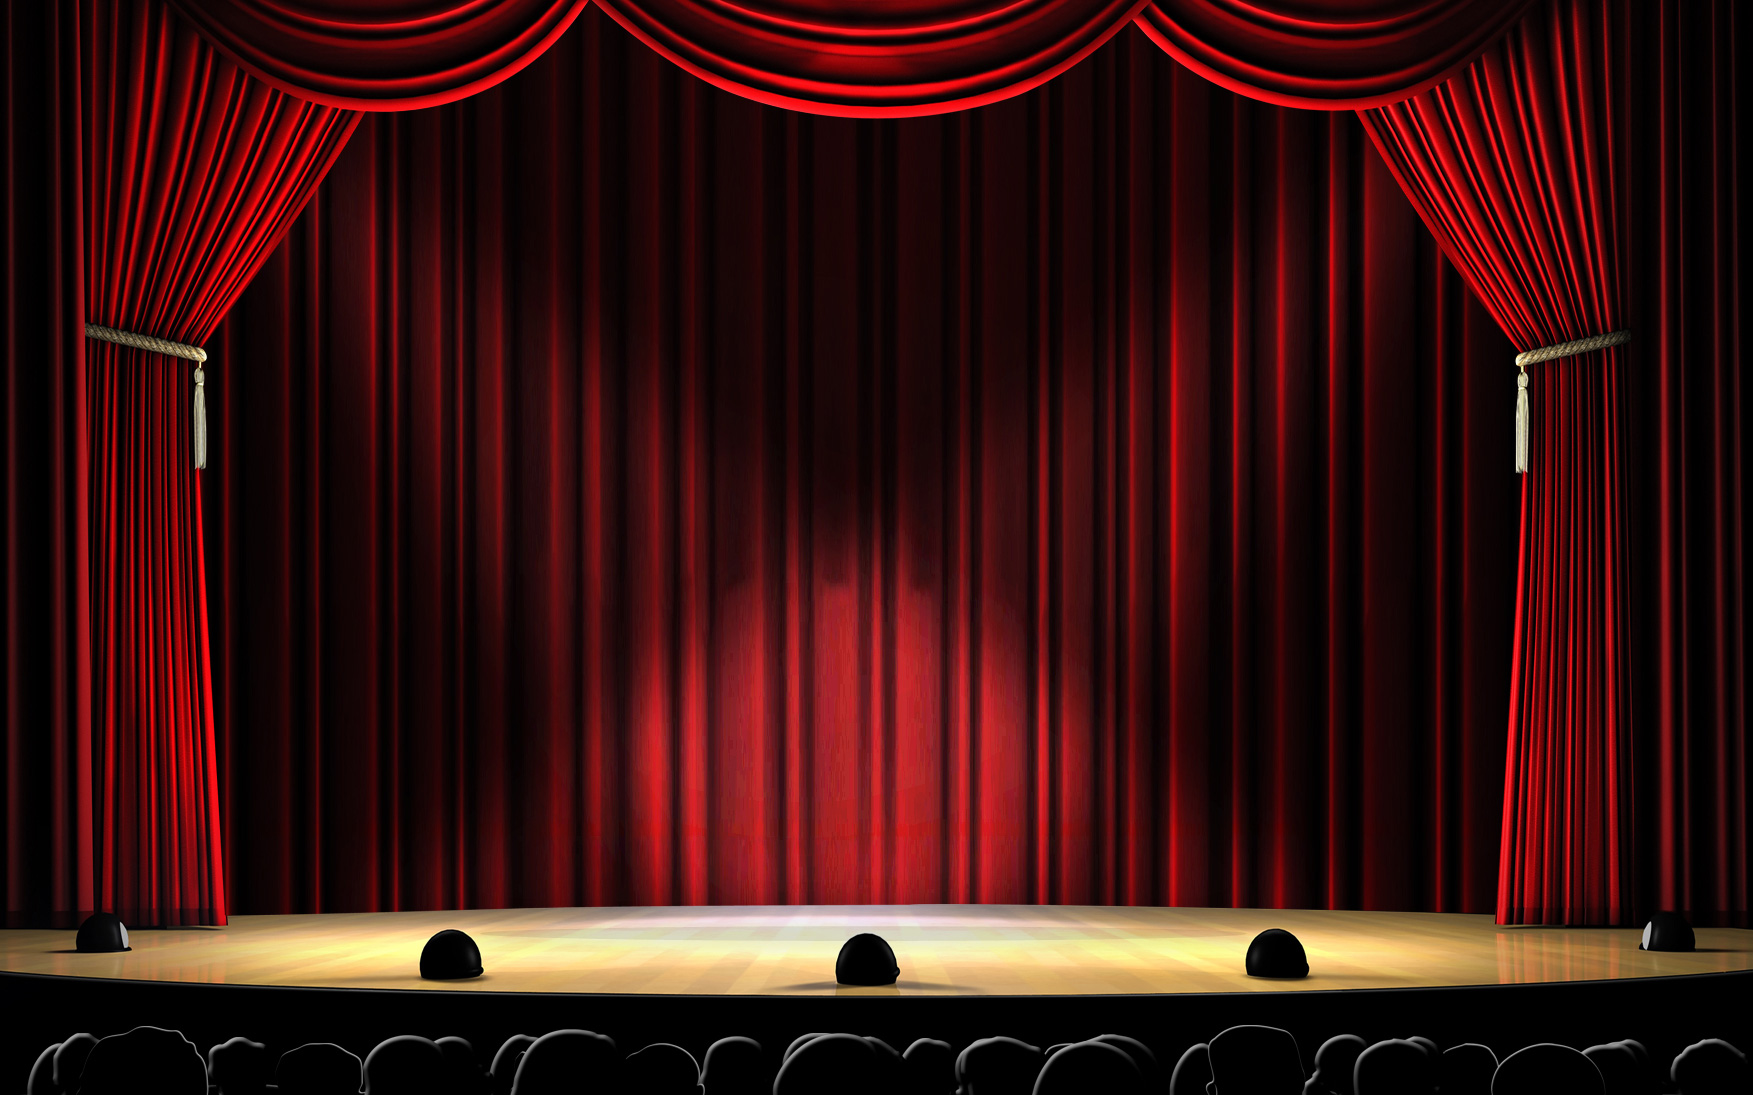 curtain theater essays Free papers and essays on blithe spirit we provide free model essays on theater, blithe spirit reports, and term paper samples related to blithe spirit start sound booth when the first shoe dropped, actually a curtain rod, the audience gasped.